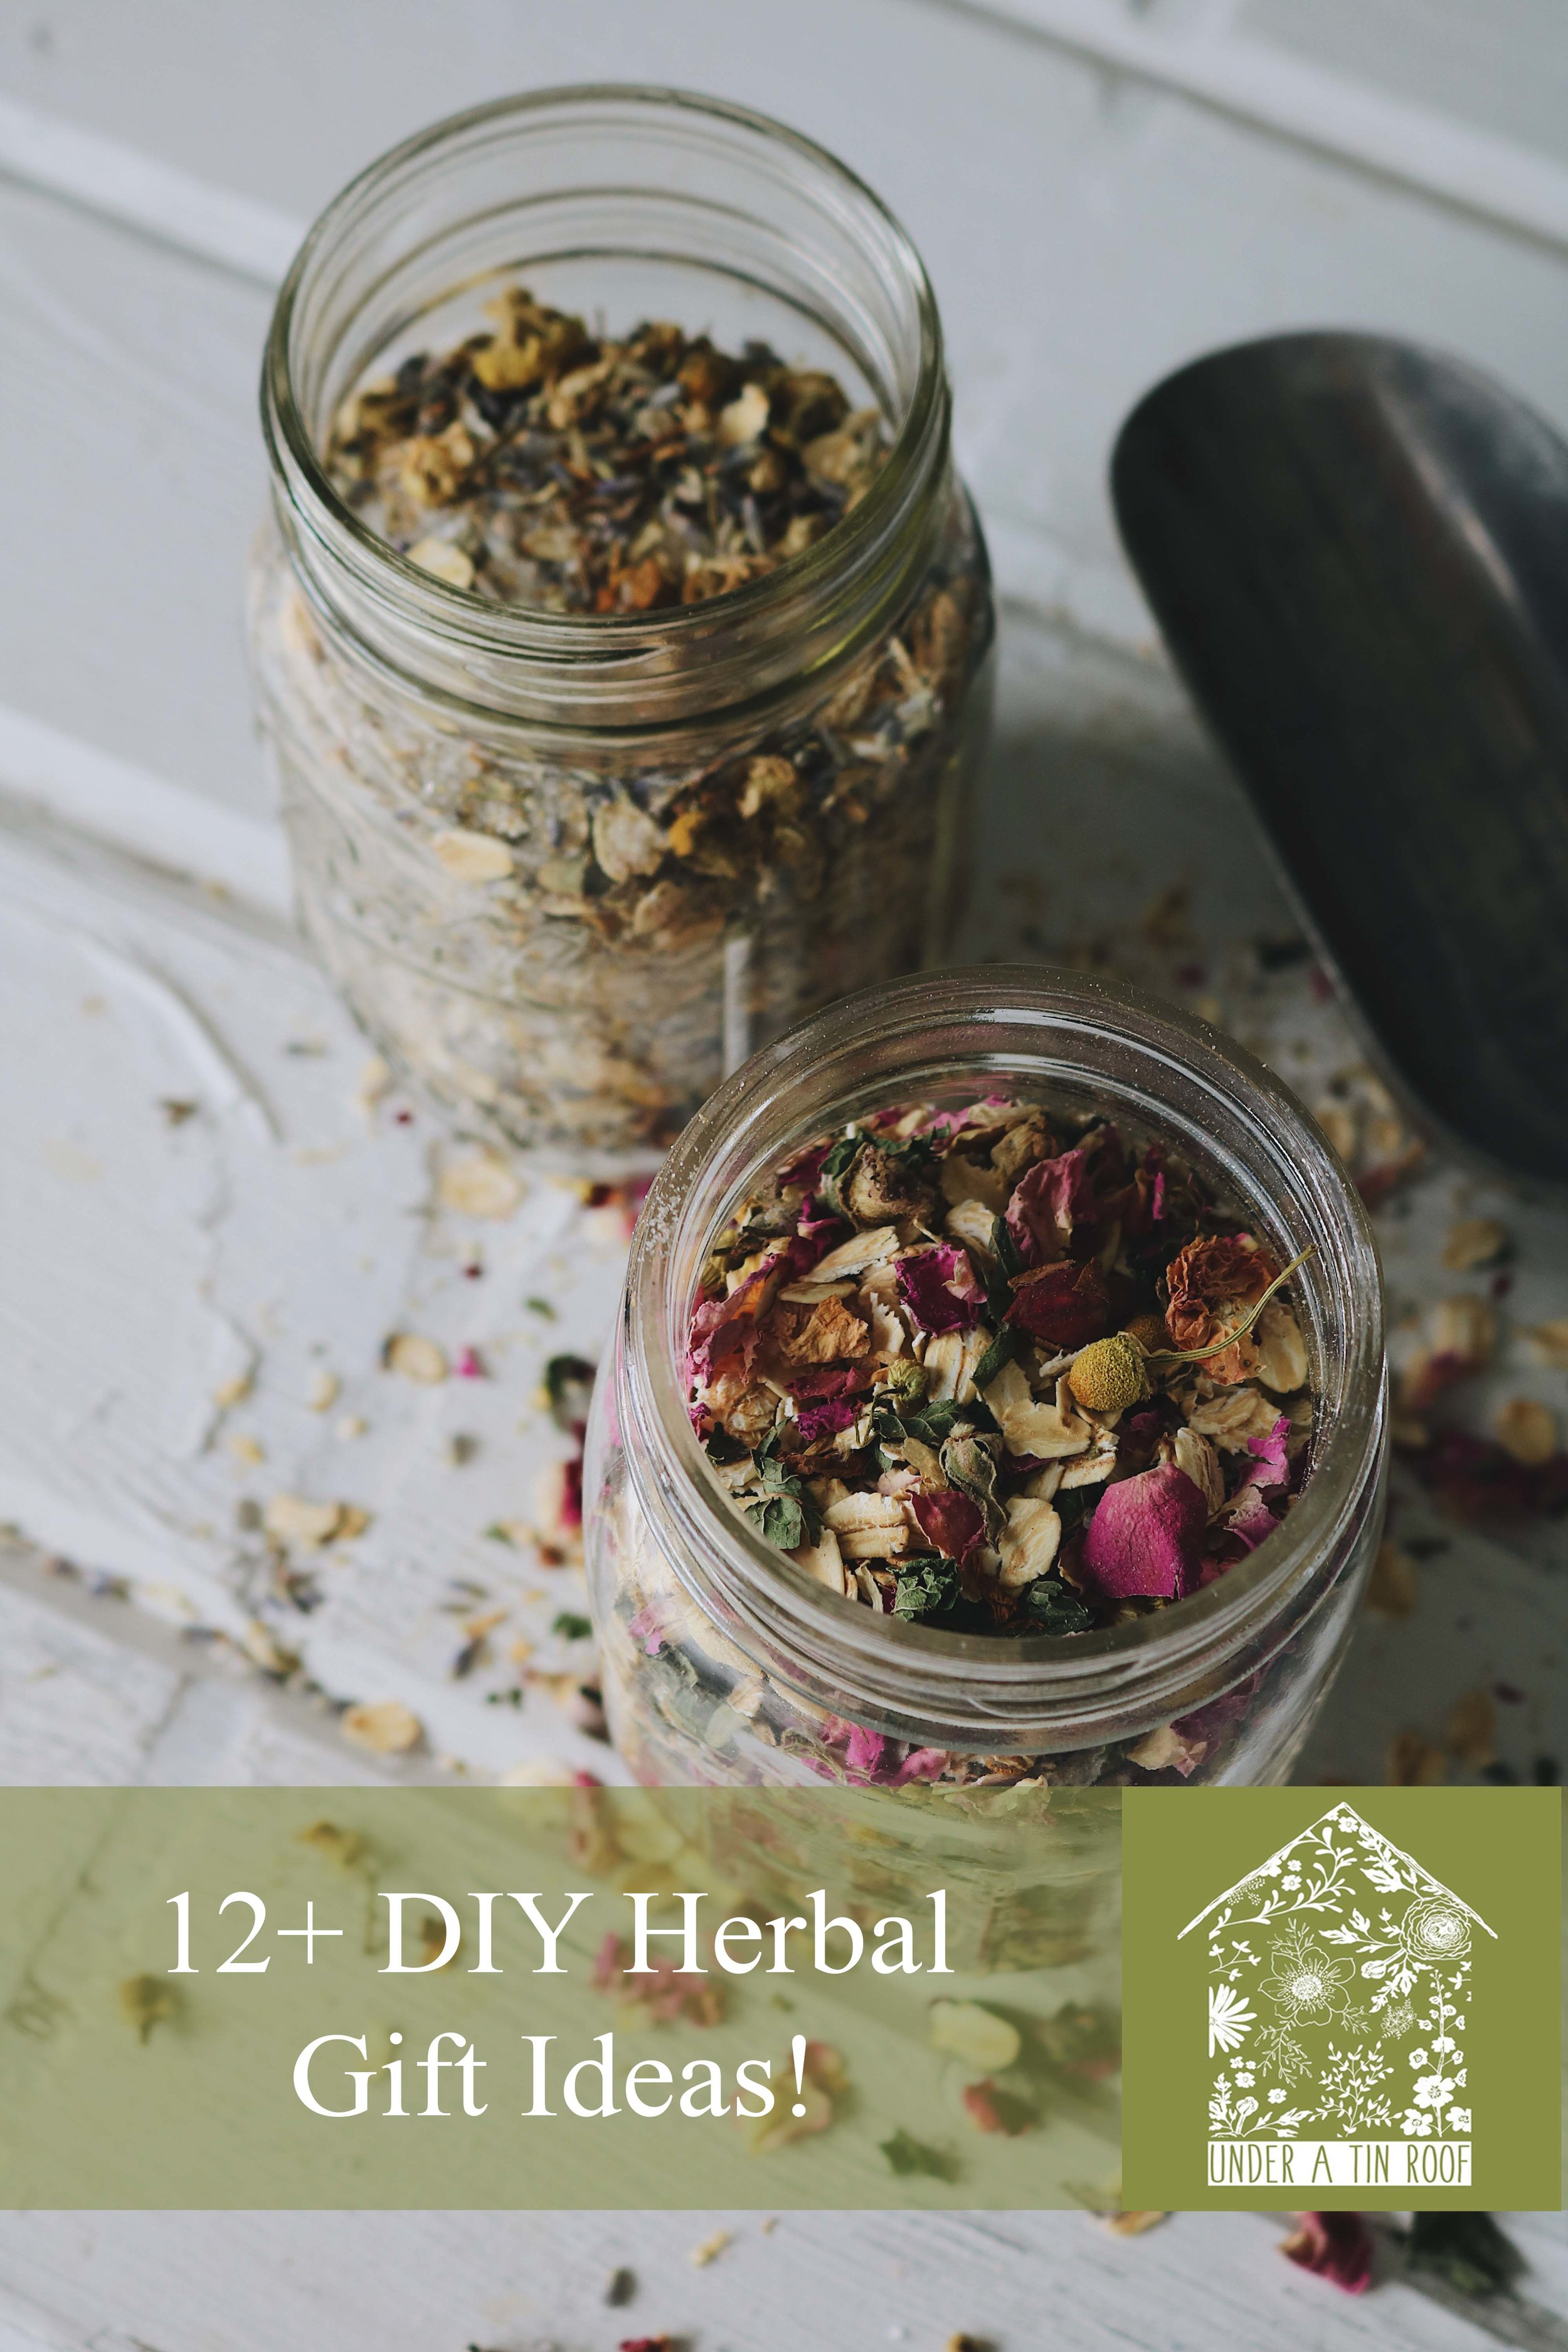 Herbal Interests | Our Favorite Handmade Herbal Gifts - Under A Tin Roof Blog